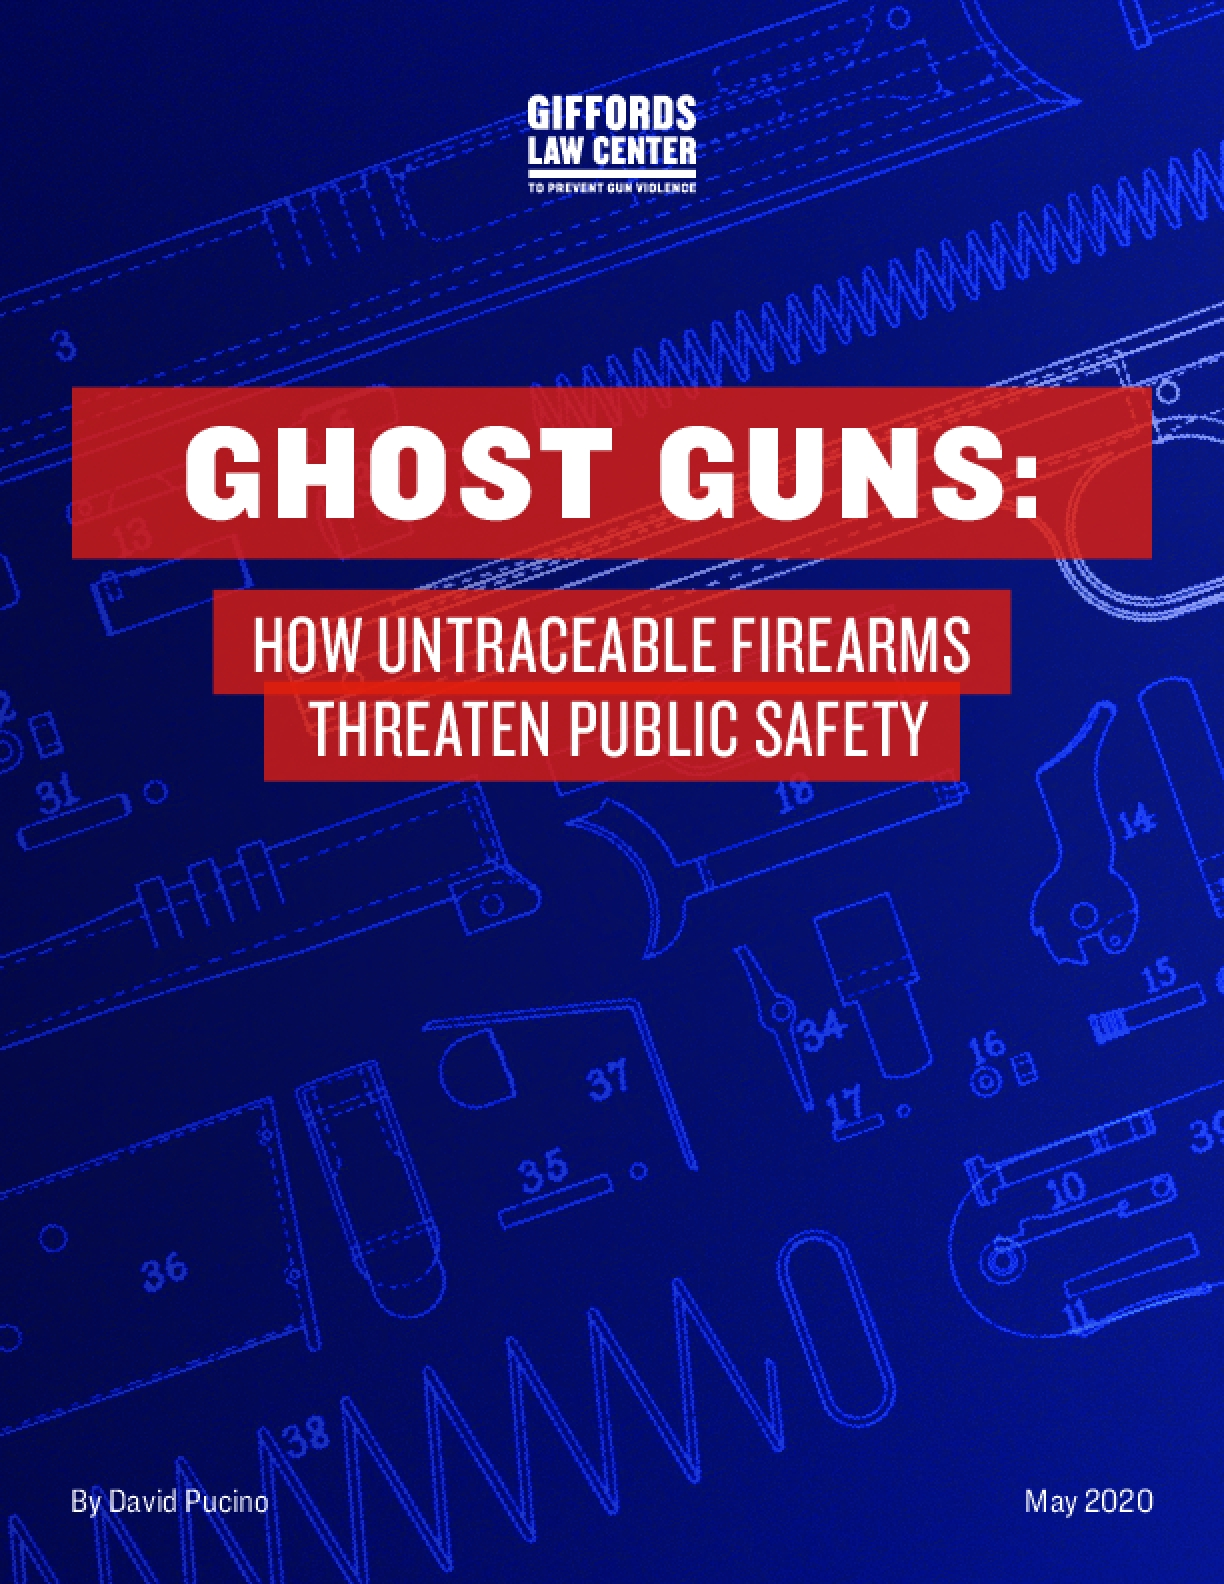 Ghost Guns: How Untraceable Firearms Threaten Public Safety